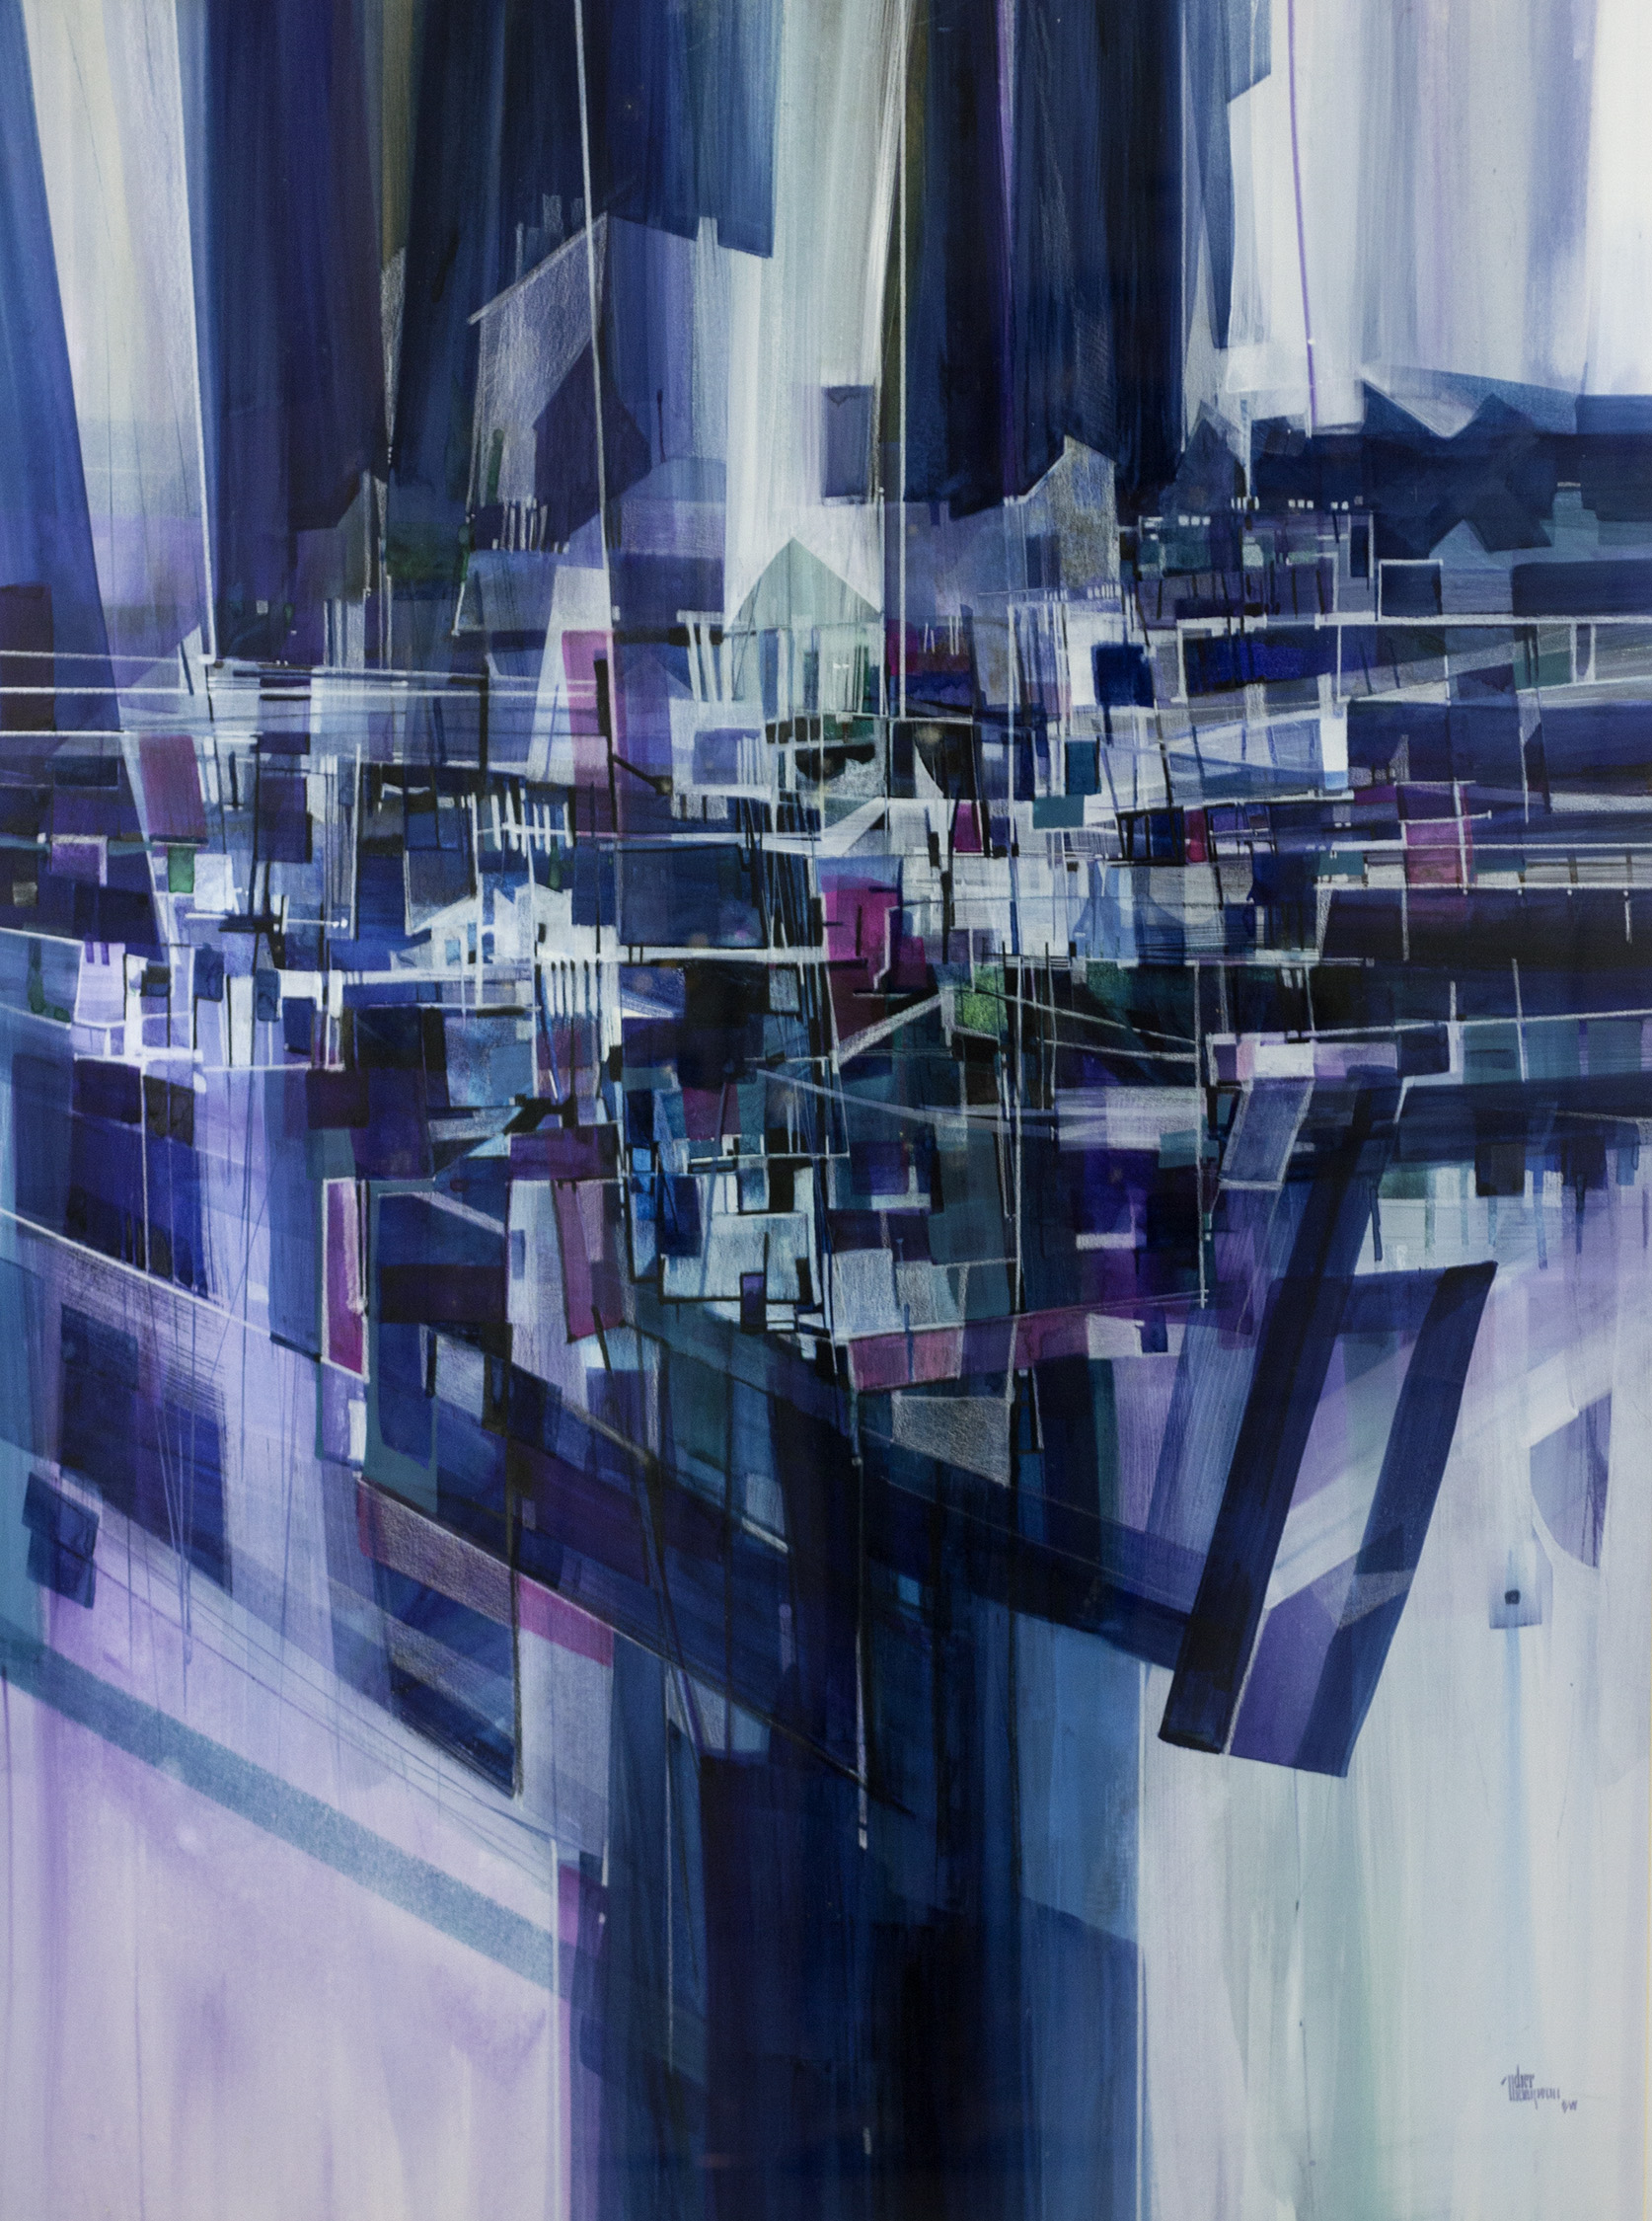 Big City Blues, Cher Thompson, Mixed Media